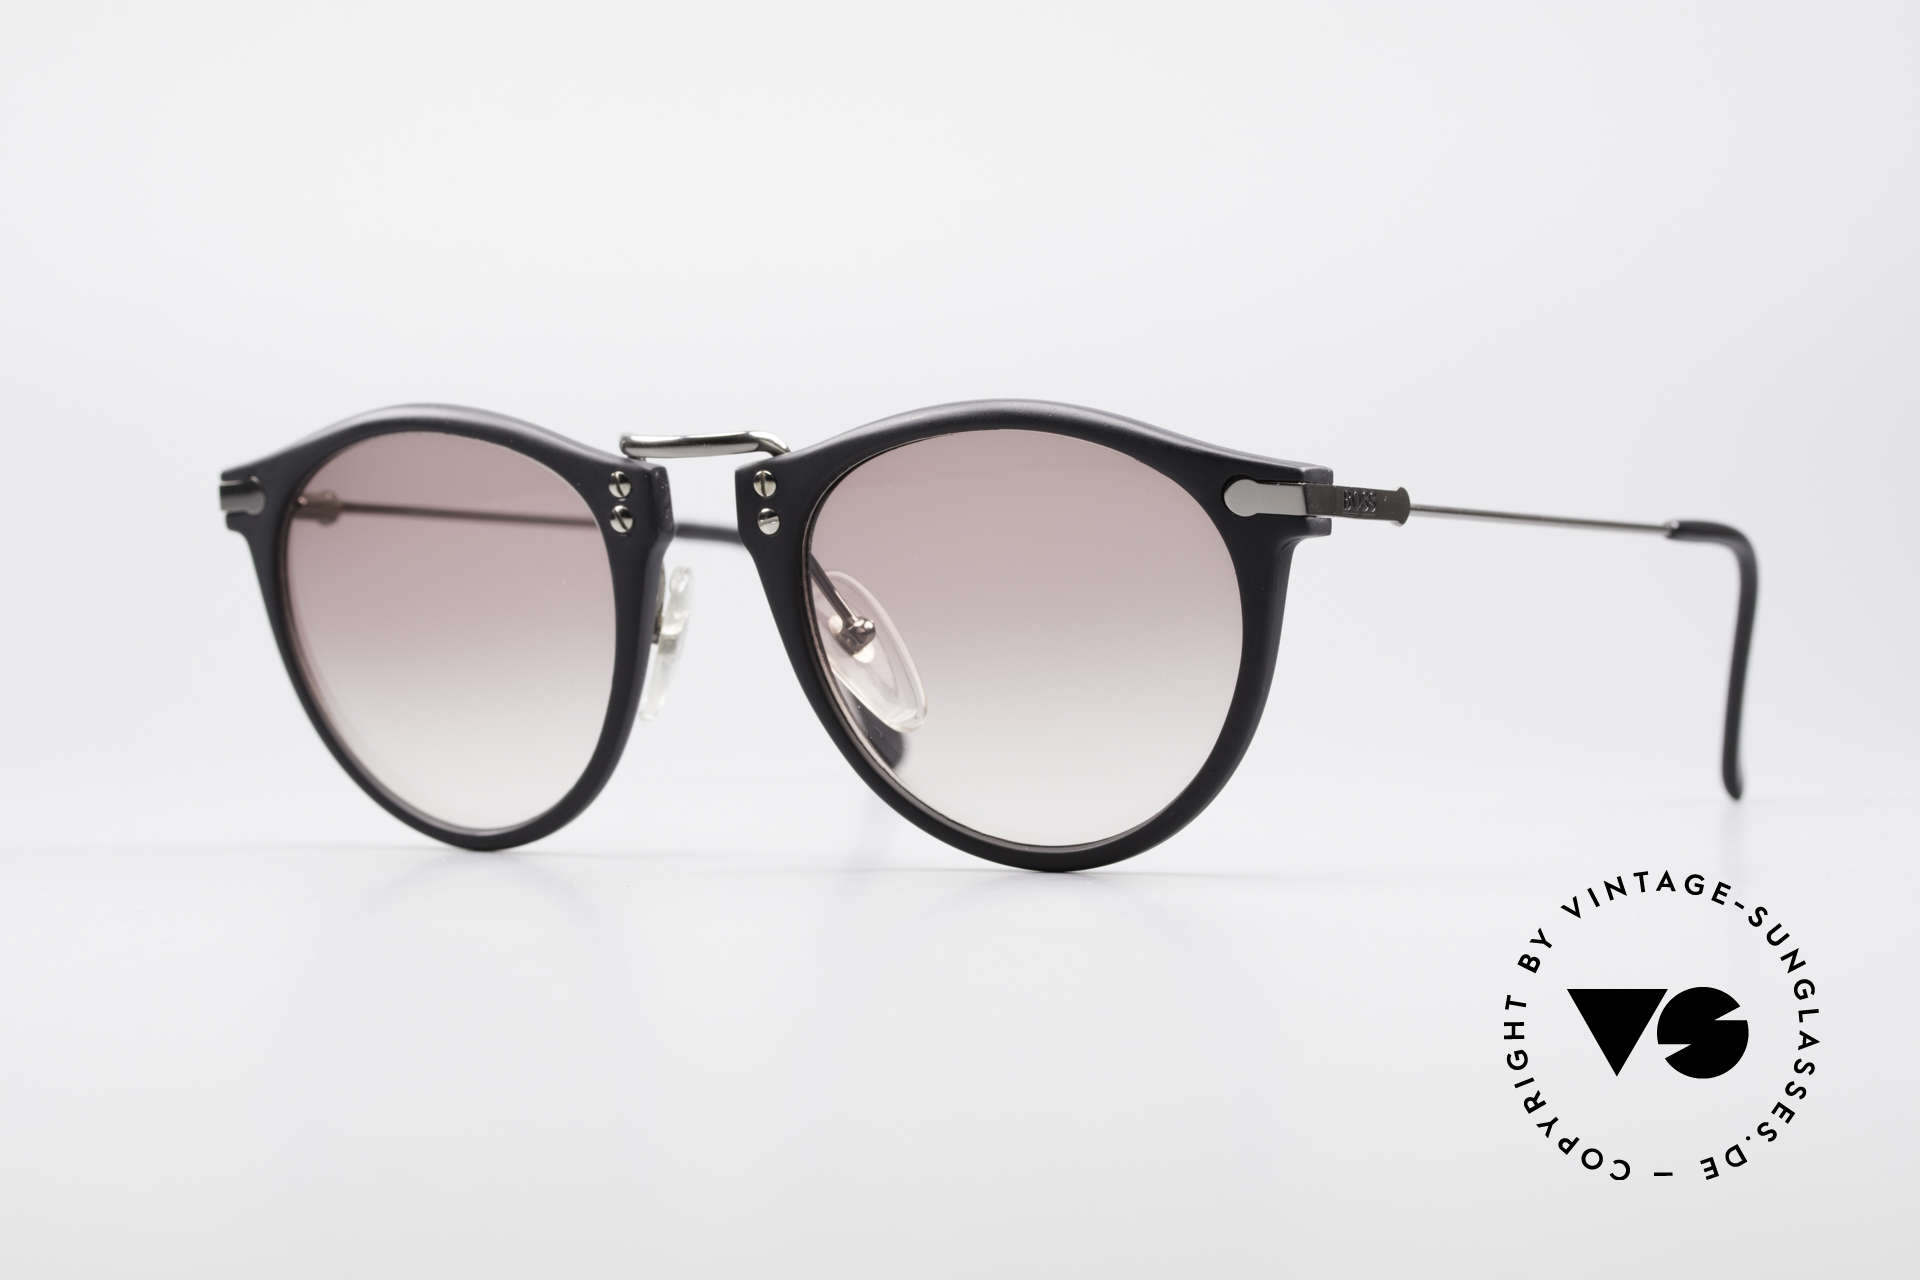 BOSS 5152 - L Panto Style Sunglasses Large, classic vintage 'panto design' sunglasses by BOSS, Made for Men